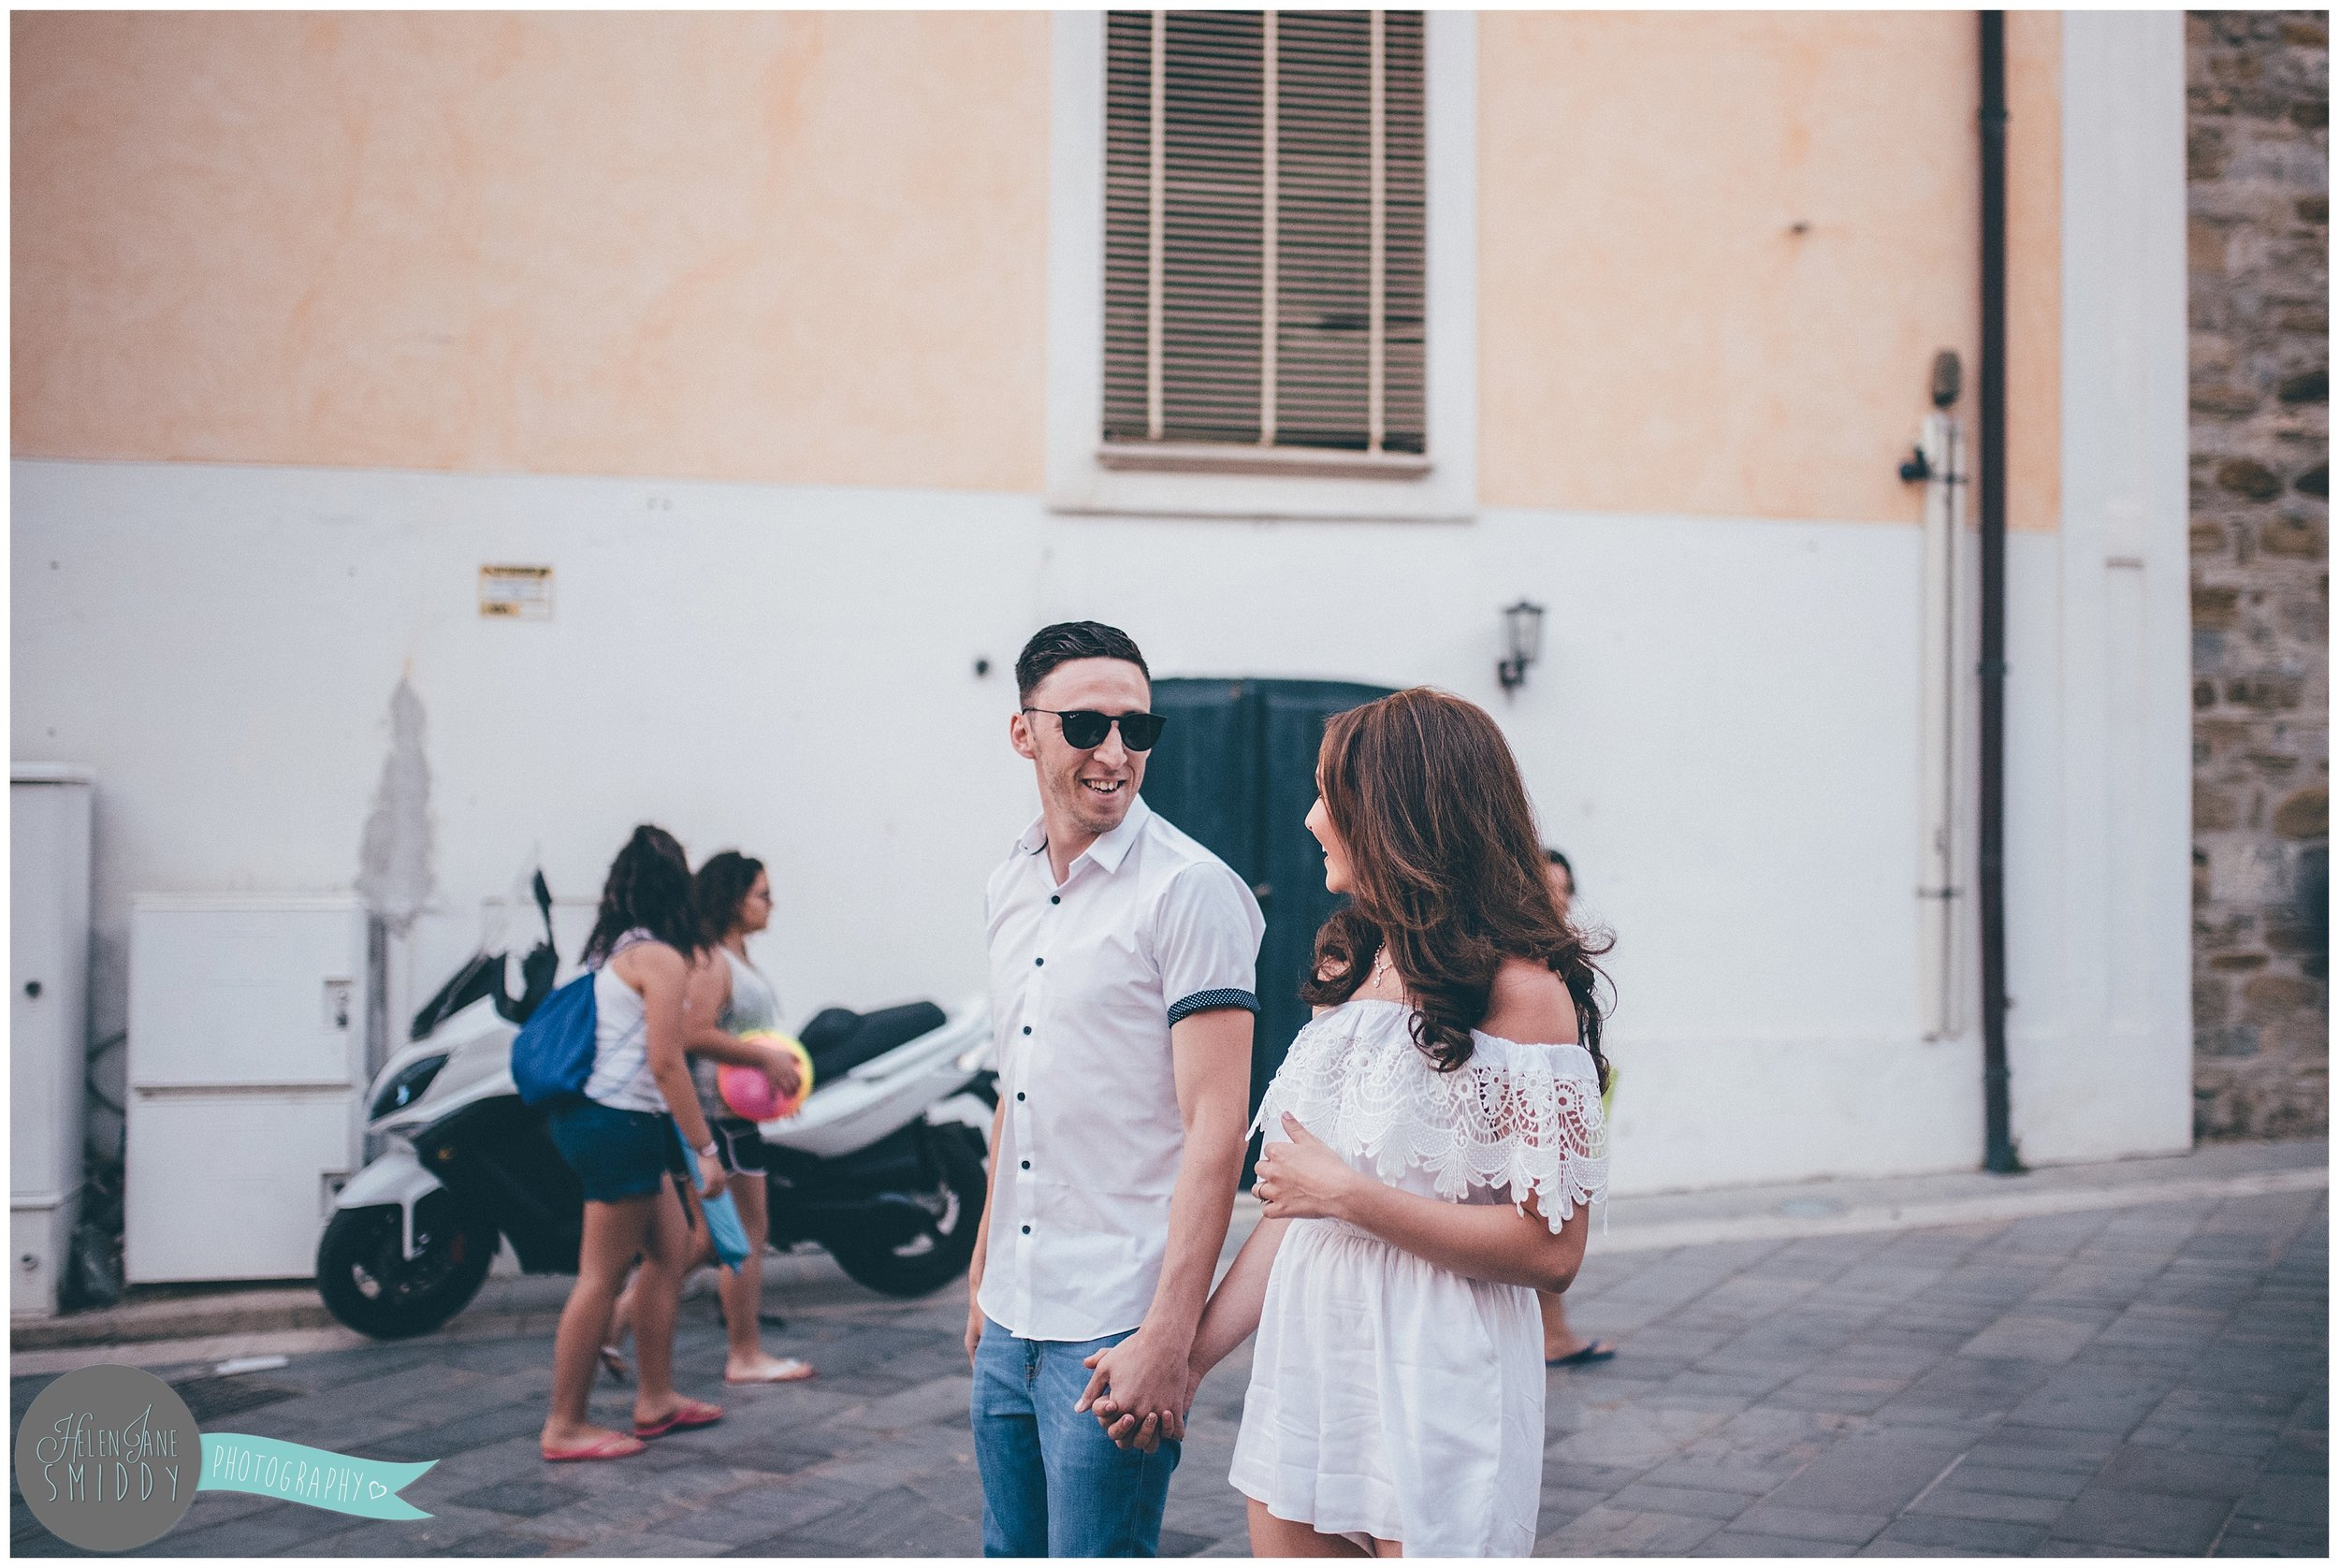 The engaged couple smile at each-other whilst walking through the Italian streets.